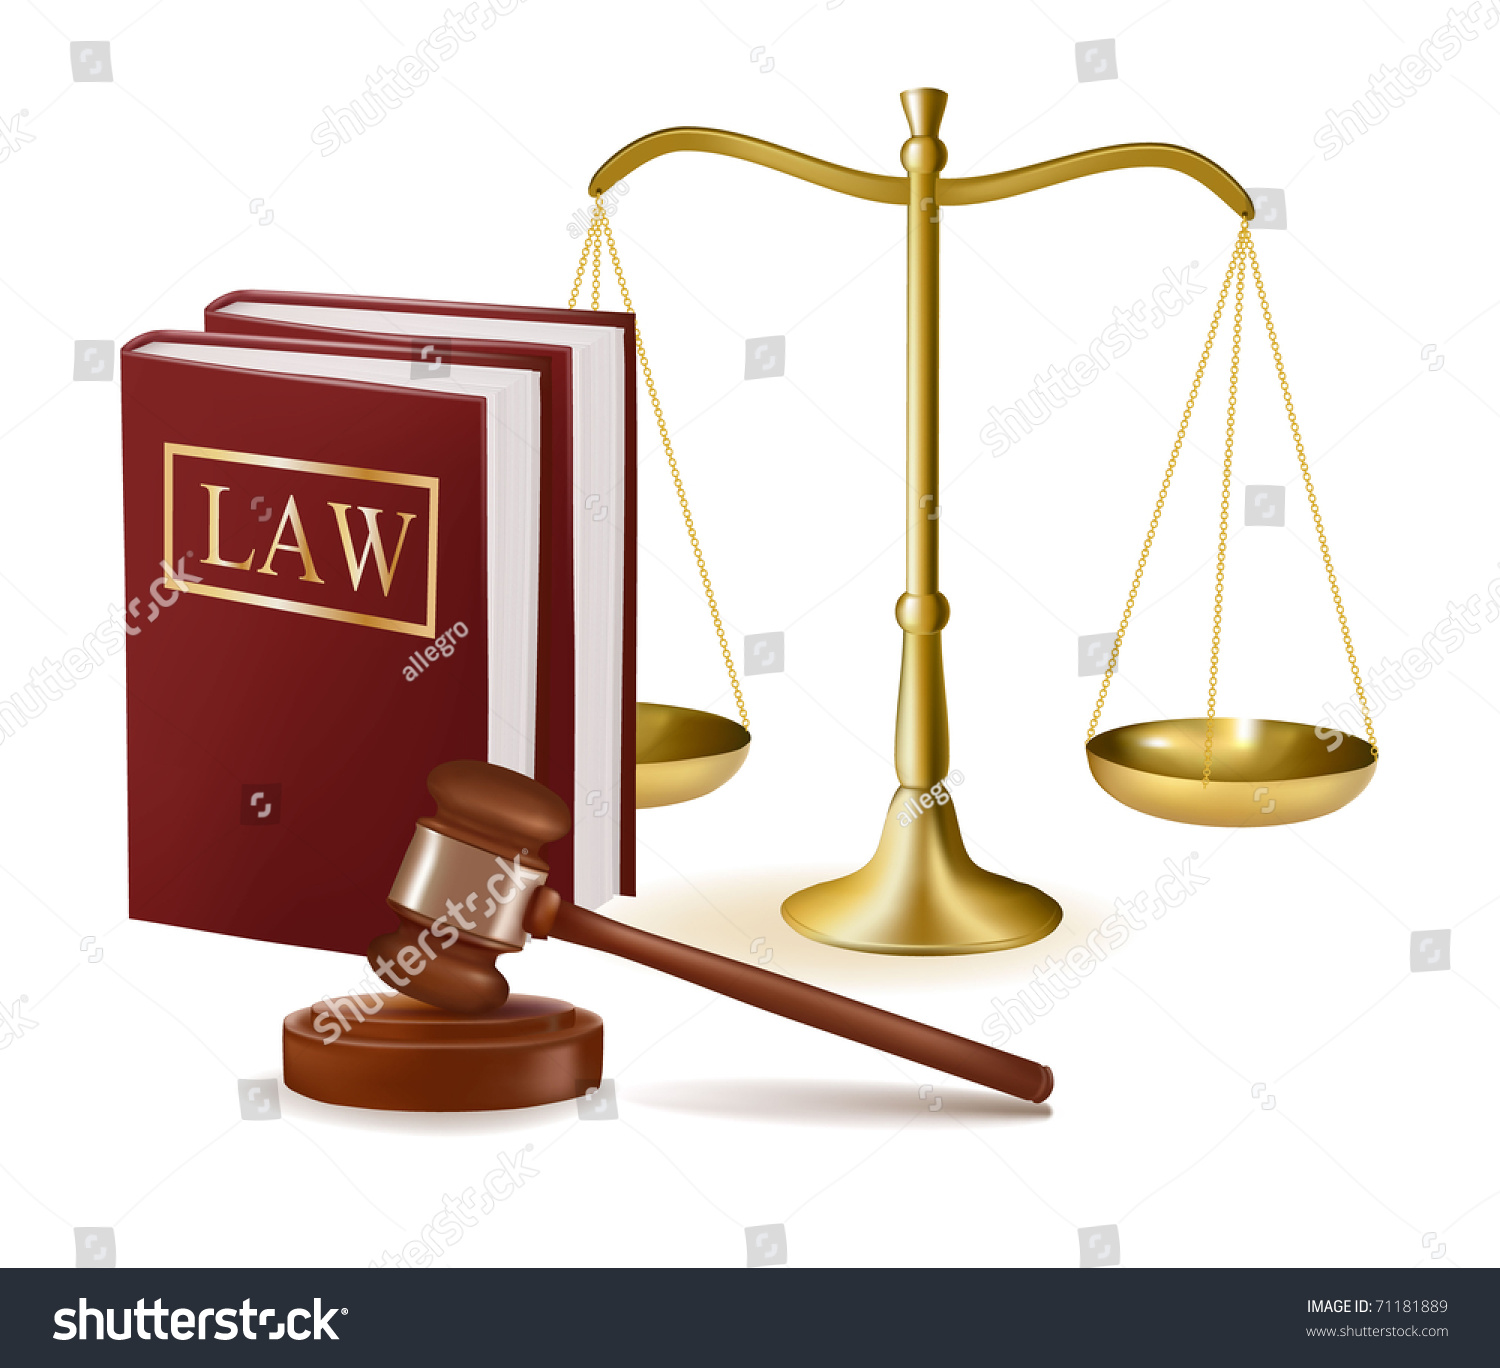 law scale and gavel - photo #3